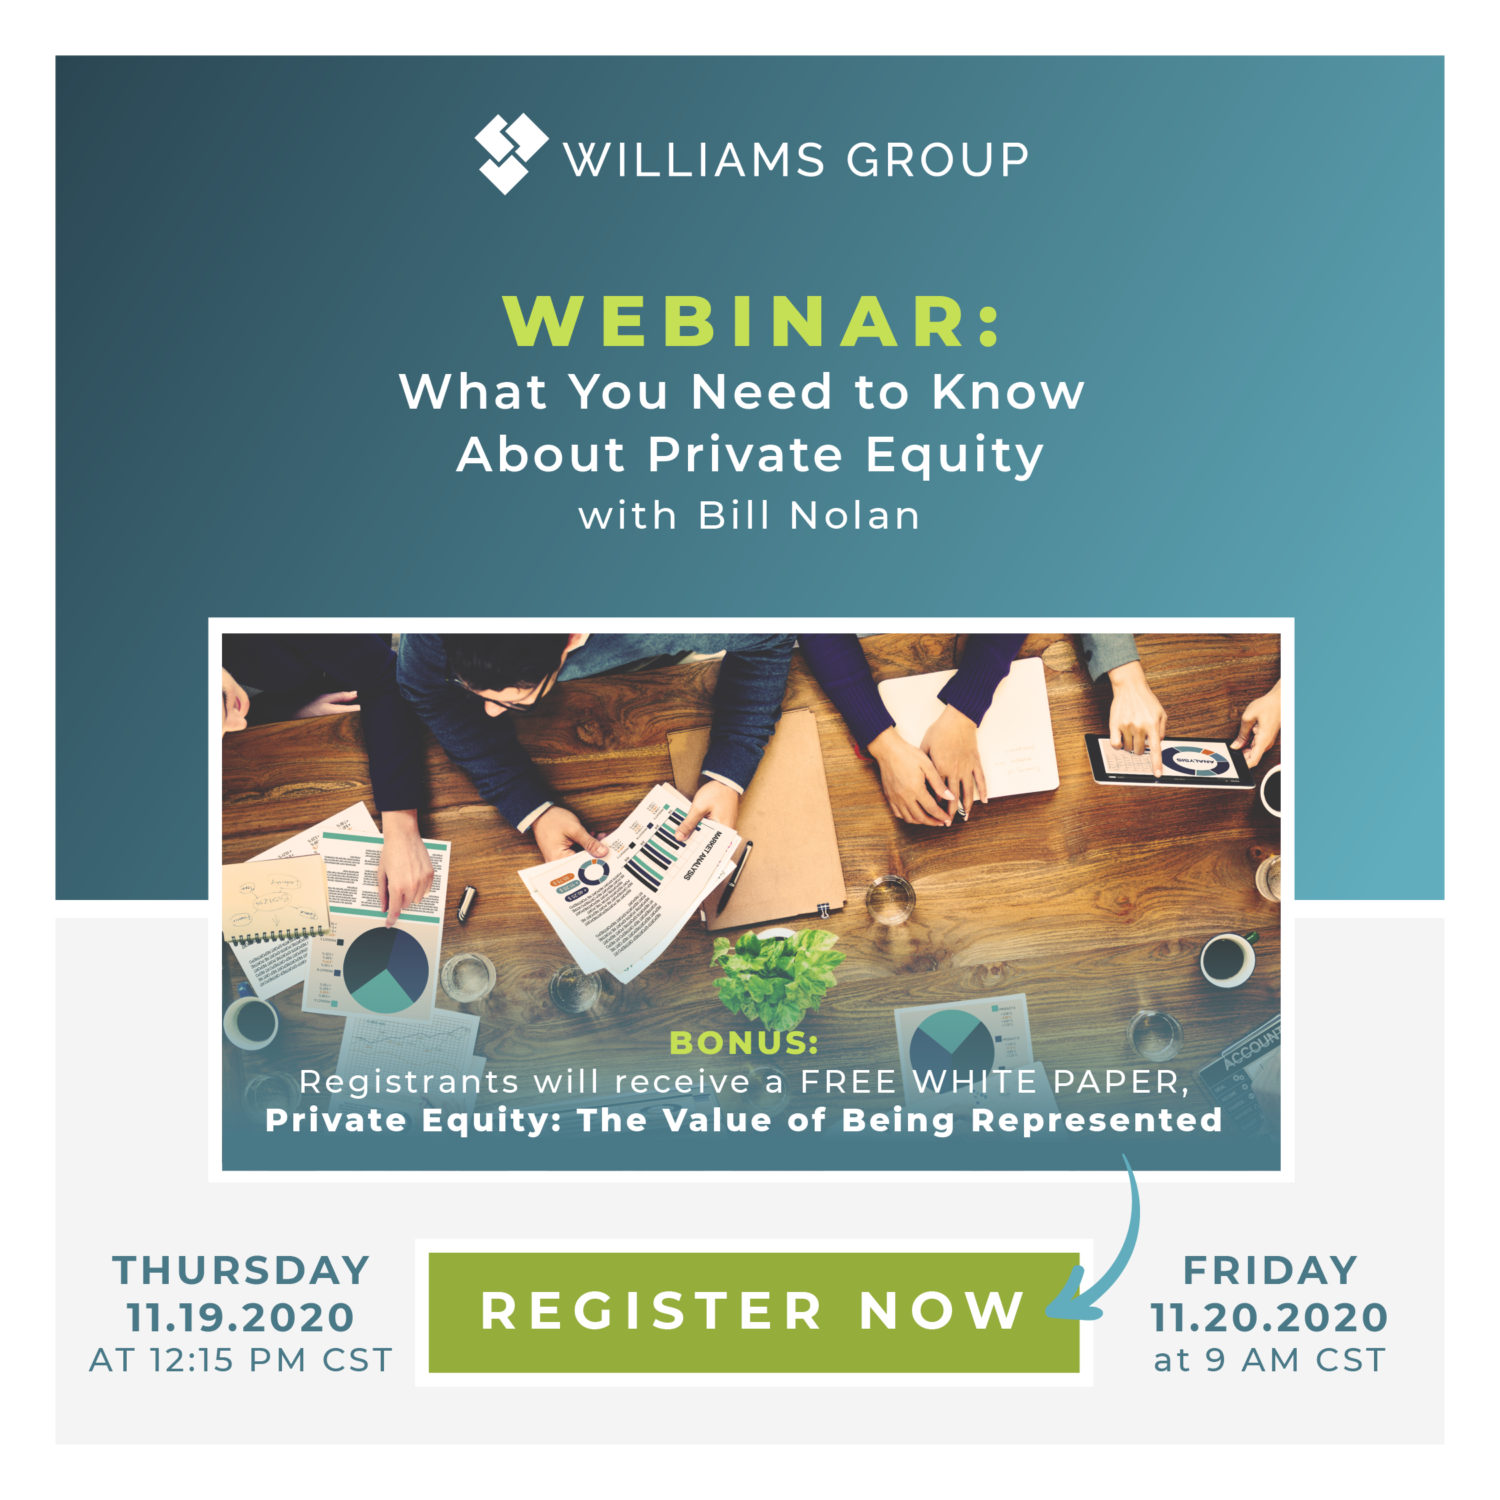 Private equity discussion